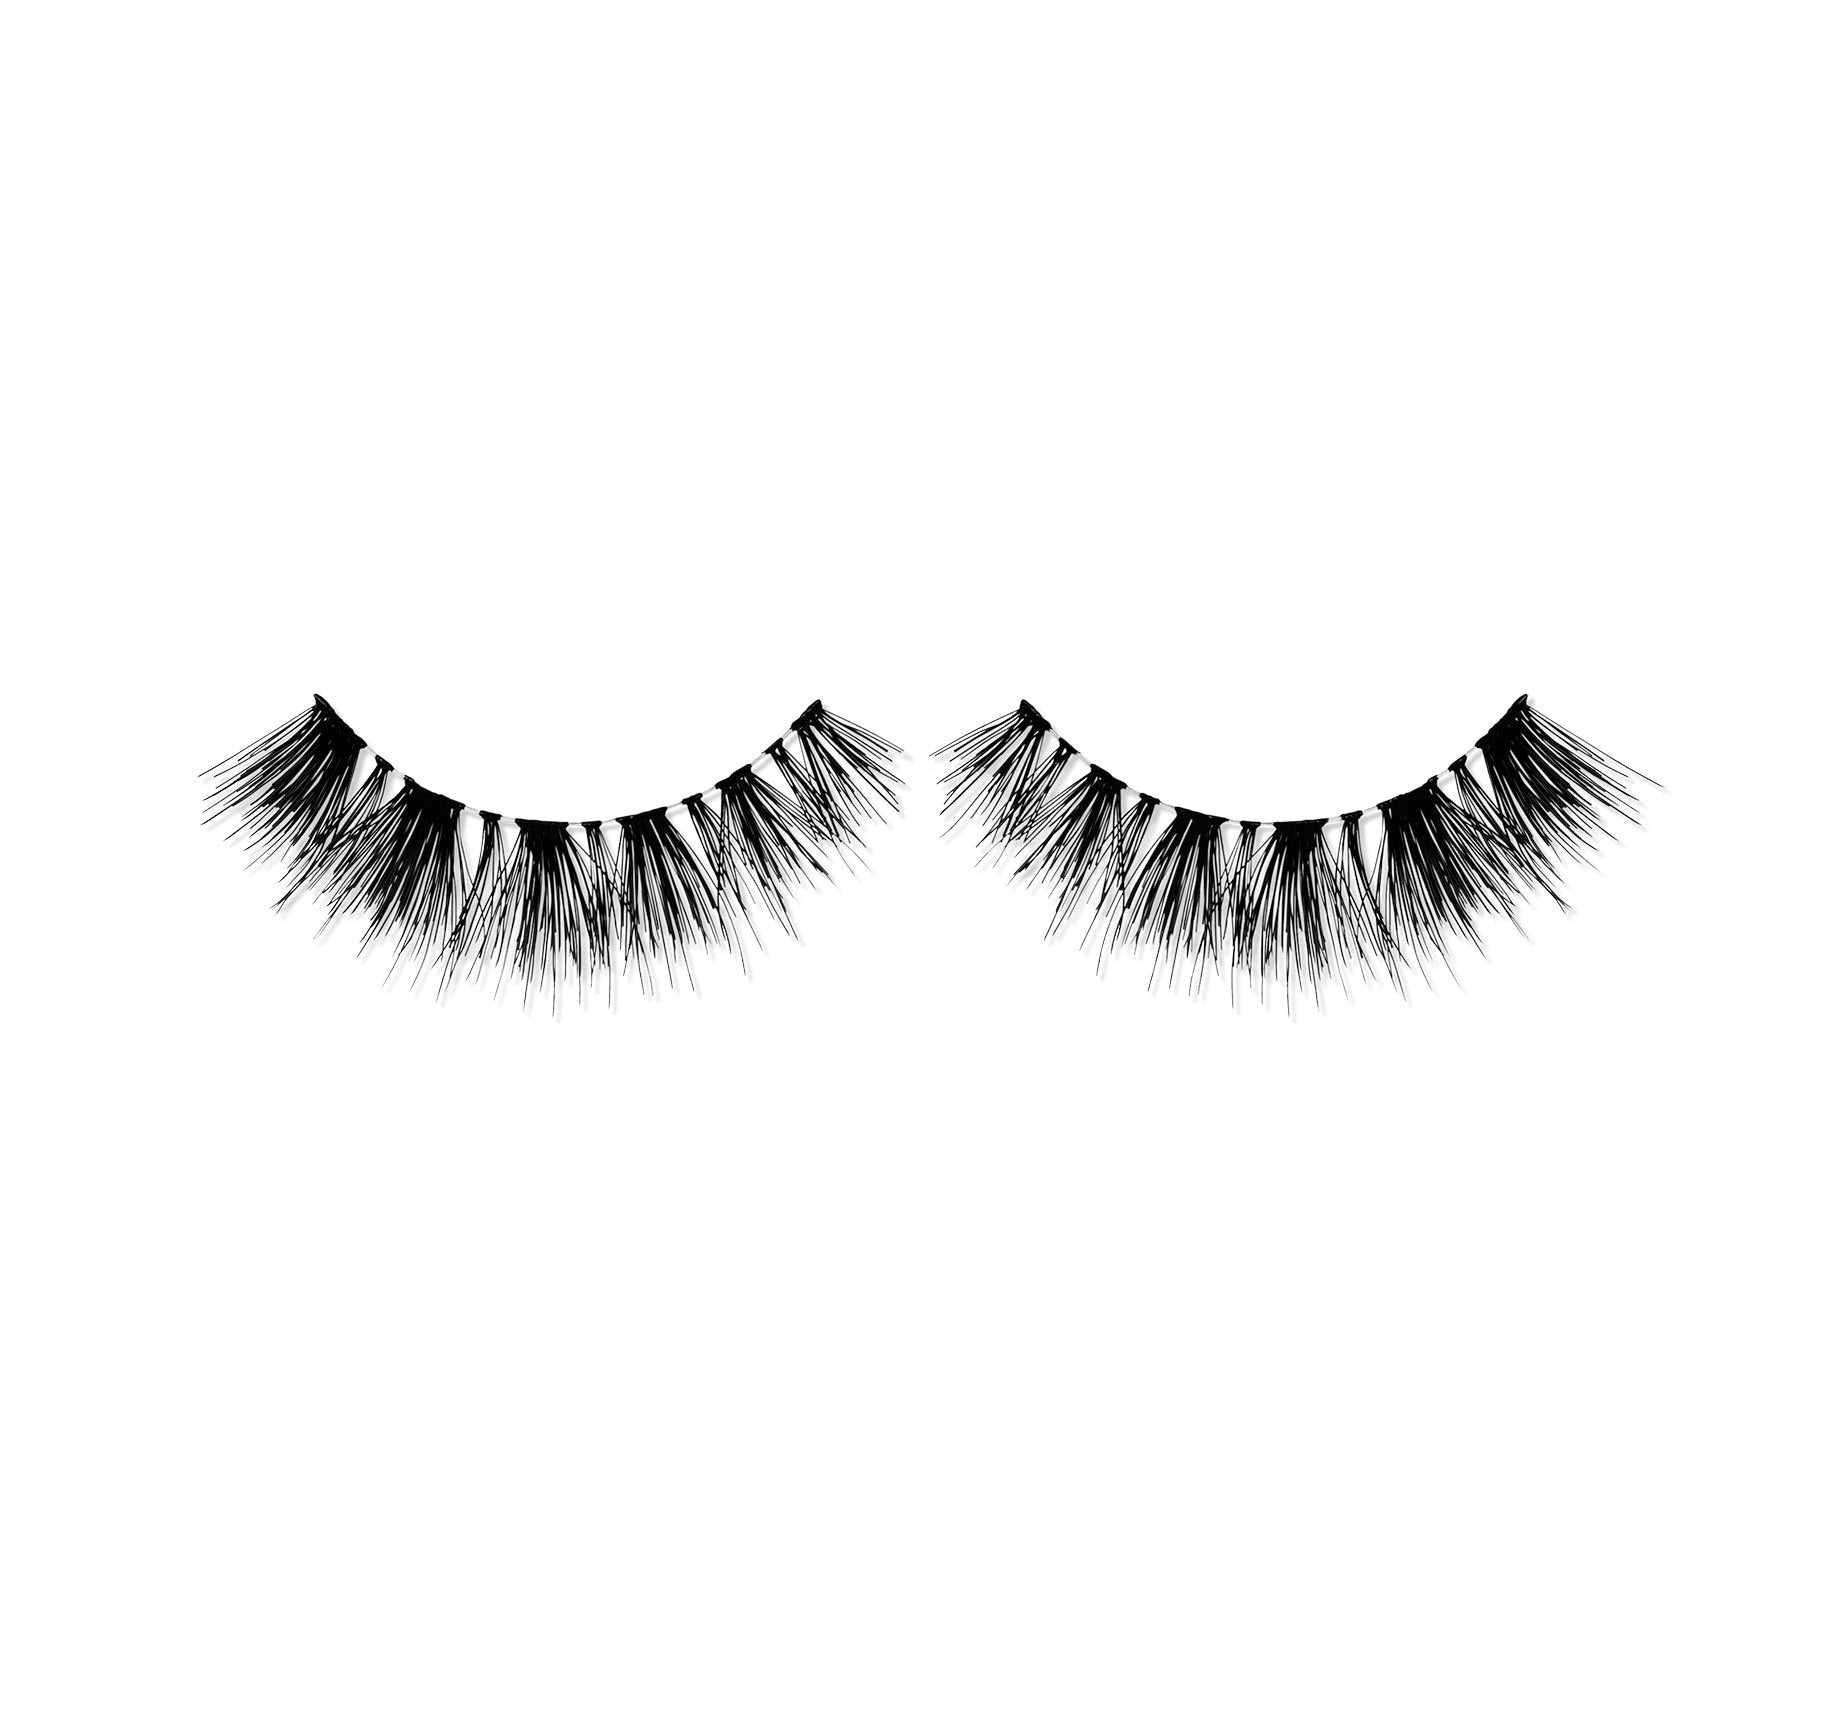 MORPHE LASHES - LONG BEACH, view larger image